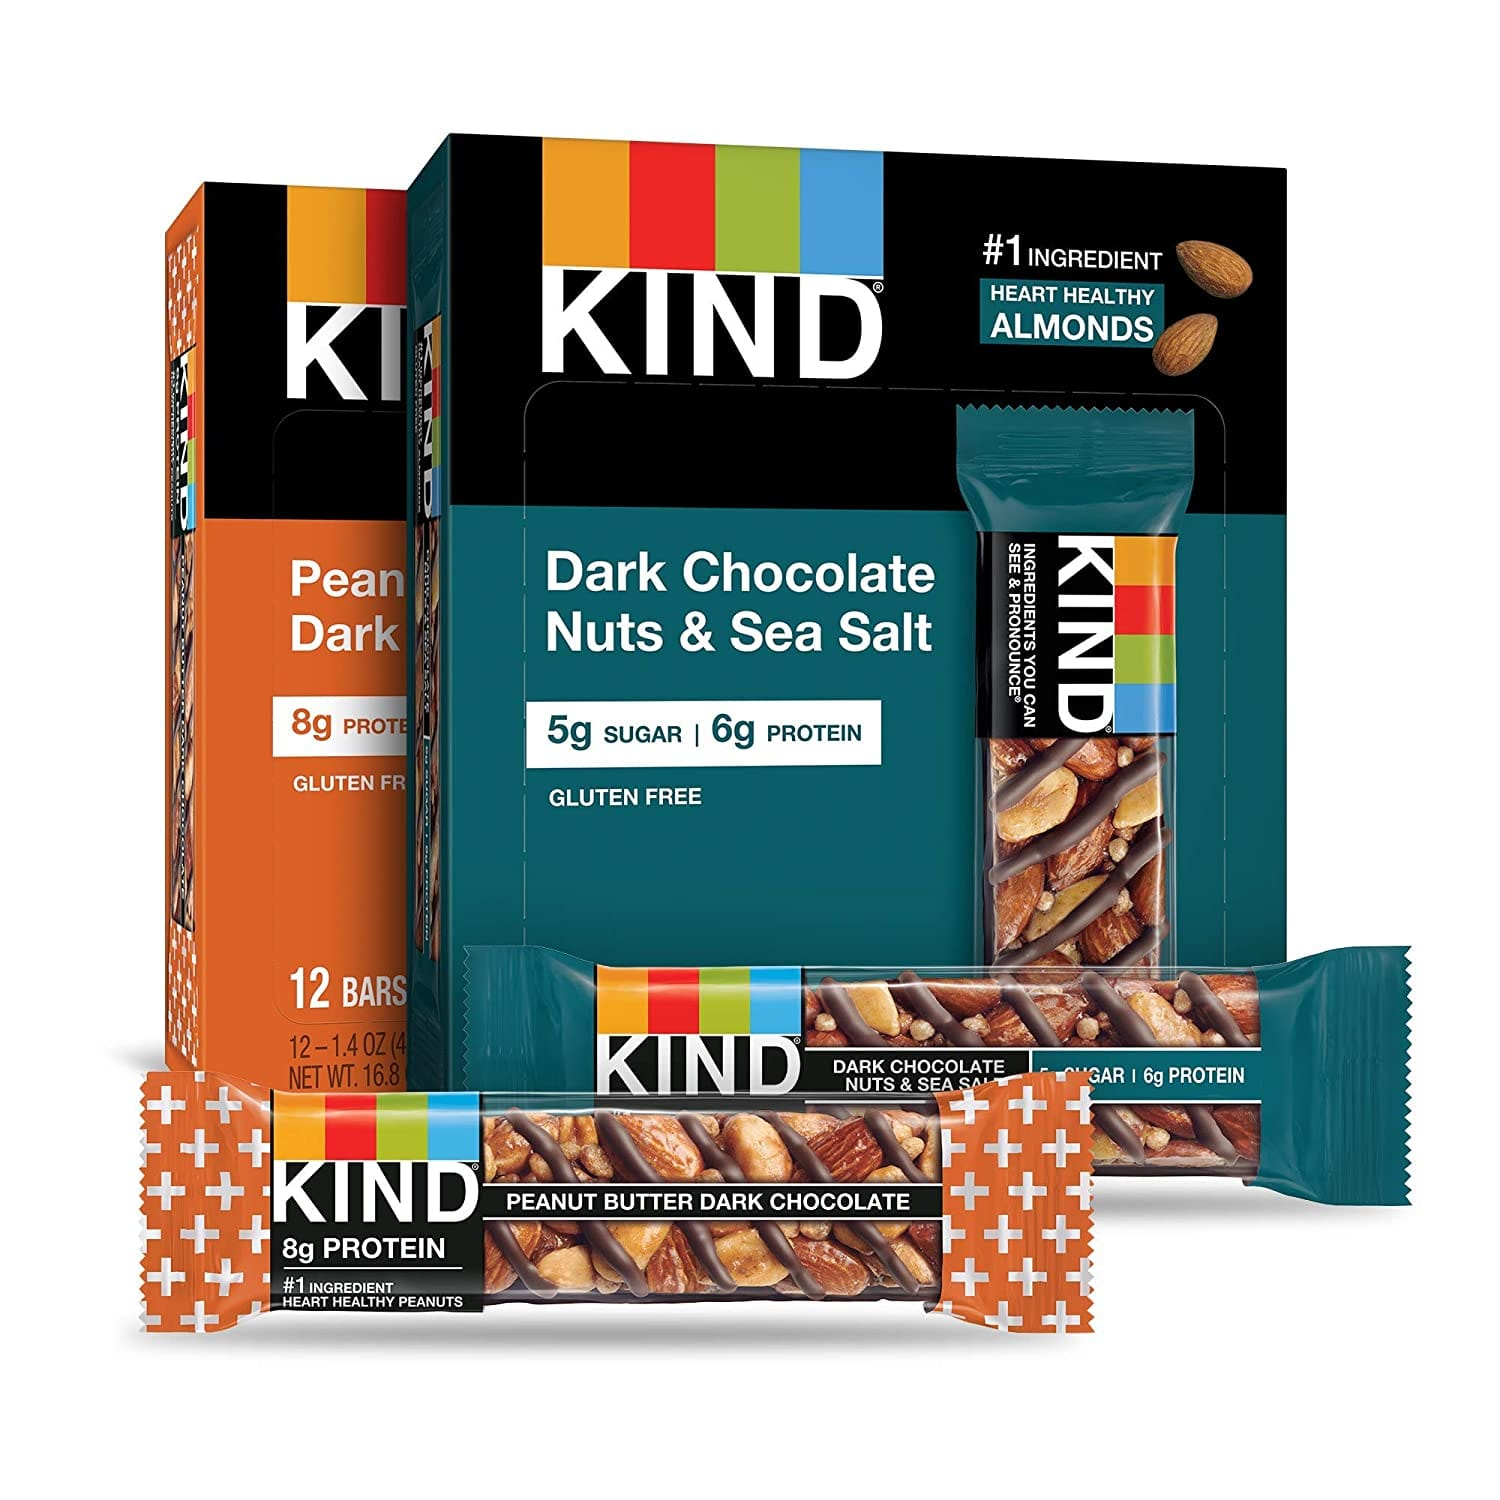 24-Count 1.4oz KIND Bars (12x Dark Chocolate Nuts & Sea Salt + 12x Peanut Butter Dark Chocolate) $17.10 w/ S&S + Free S&H w/ Prime or $25+